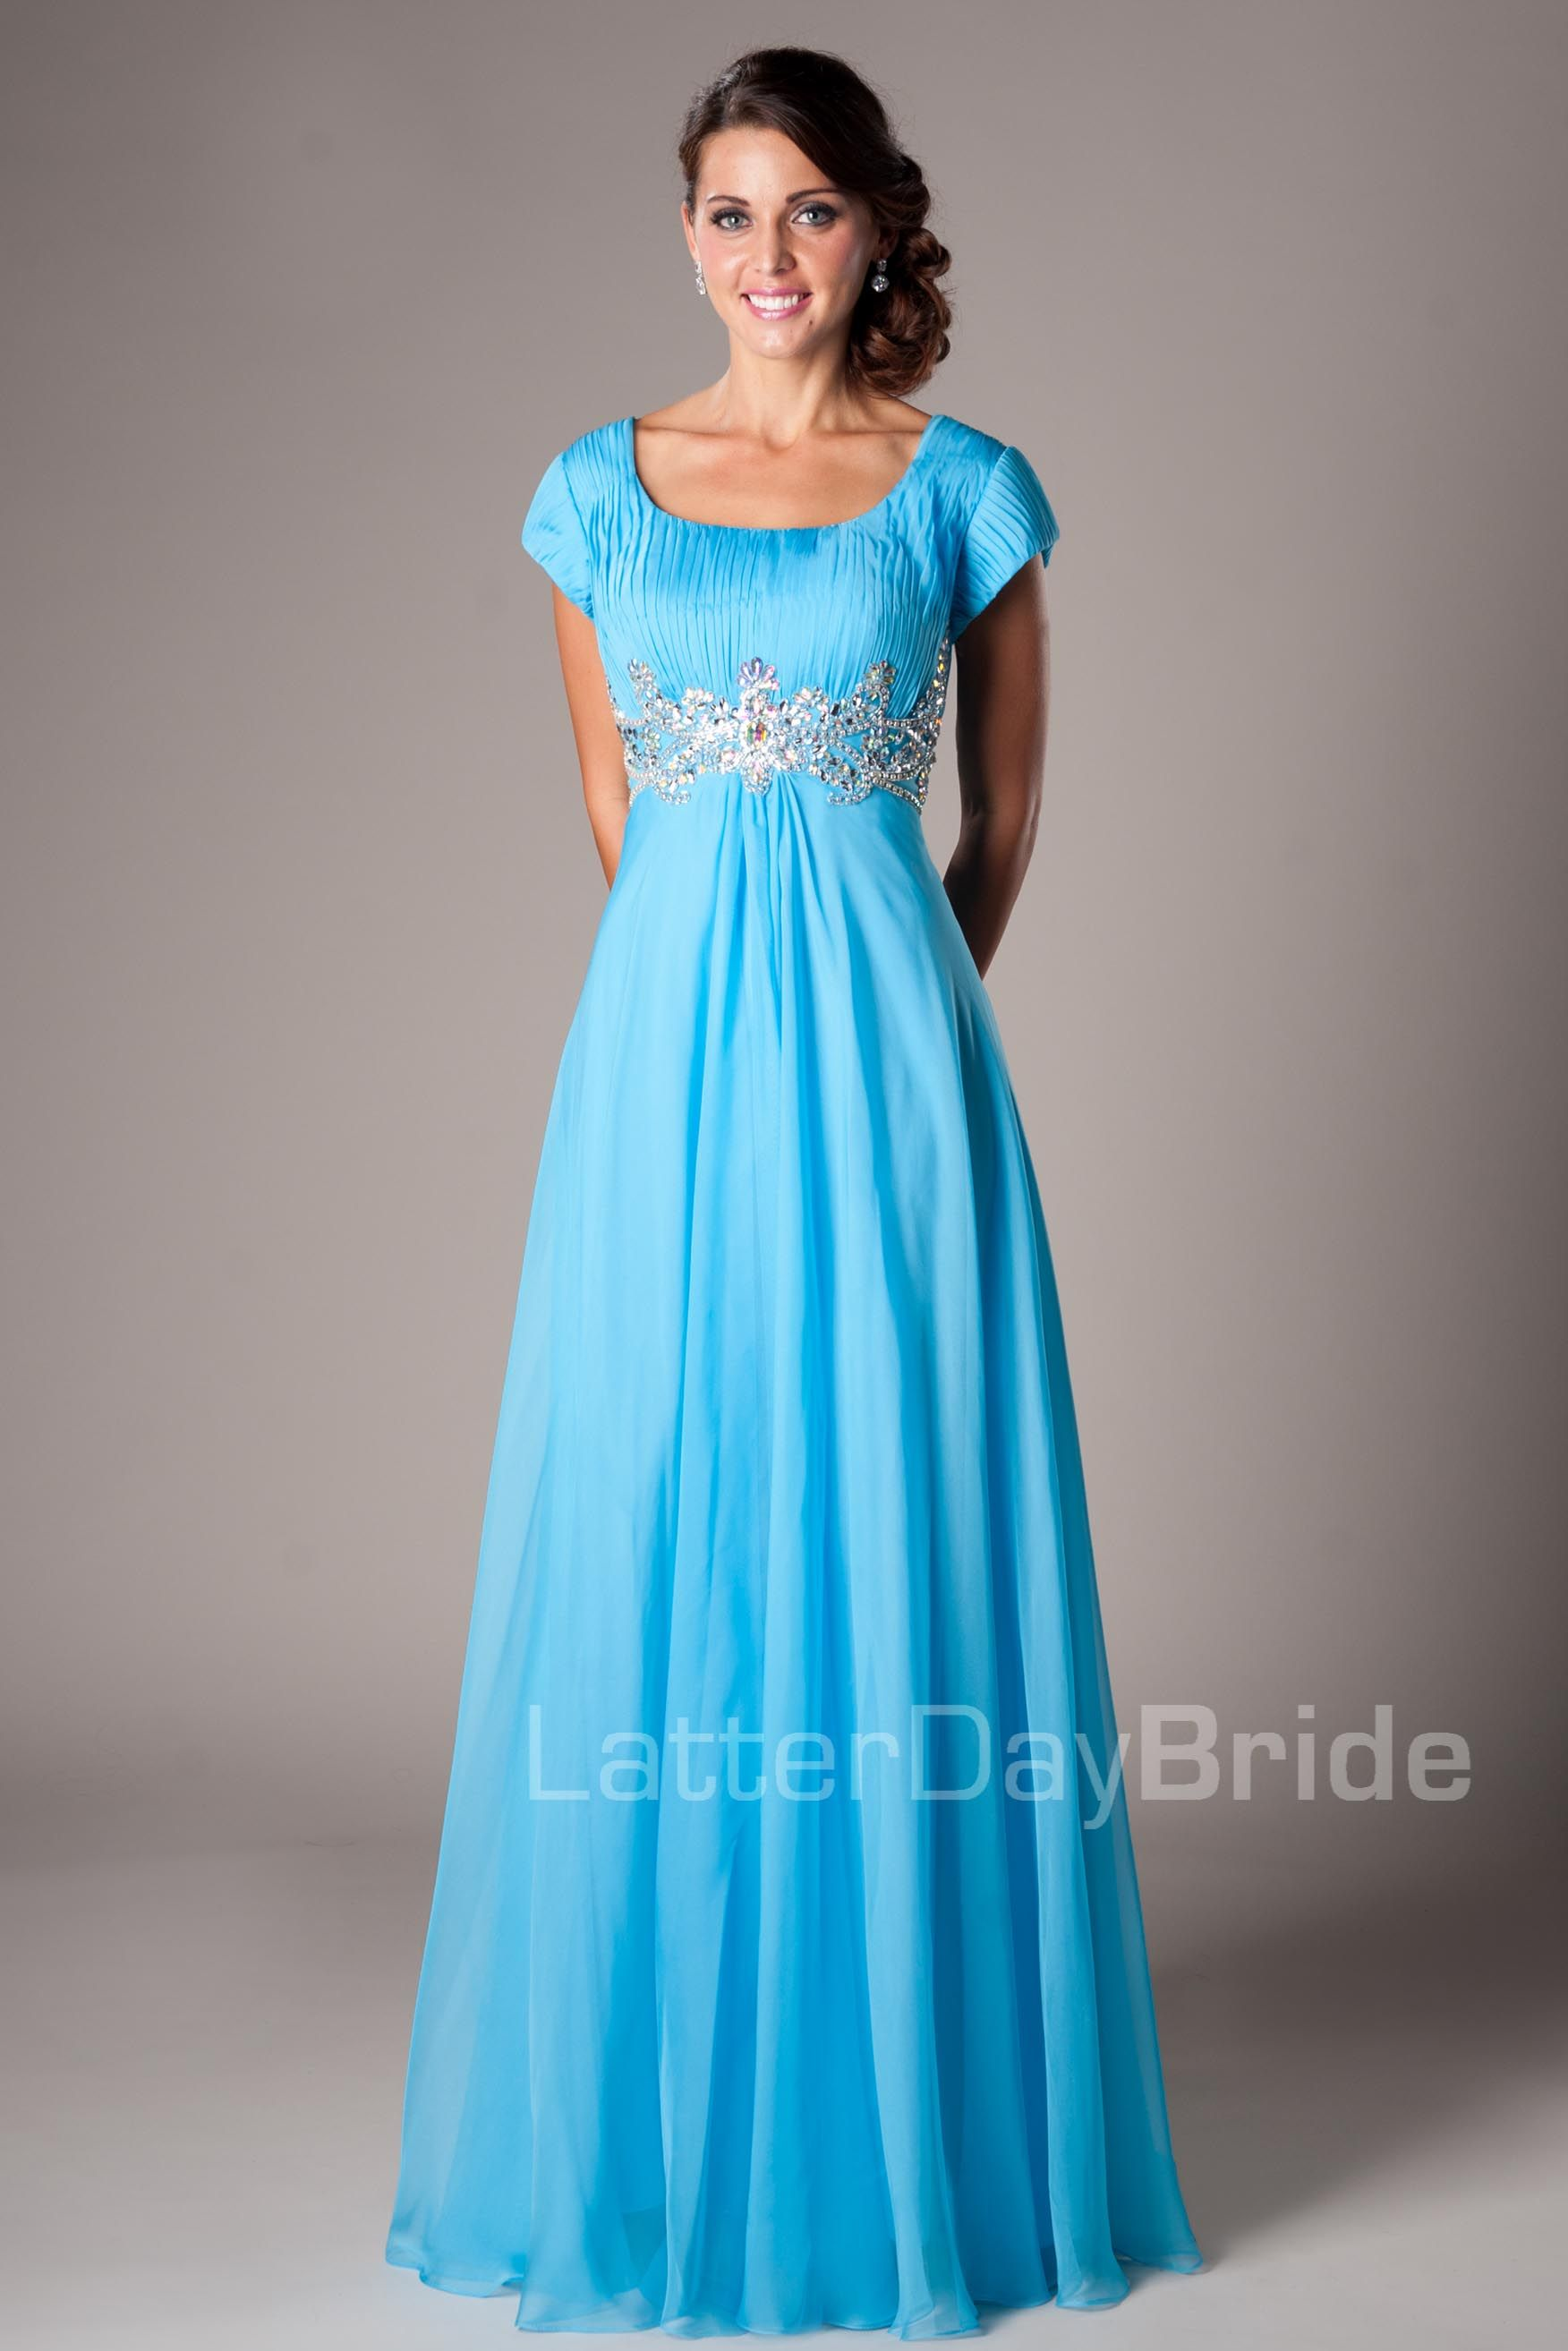 Modest Prom Dresses : Melanie- I am in love with this beautiful ...